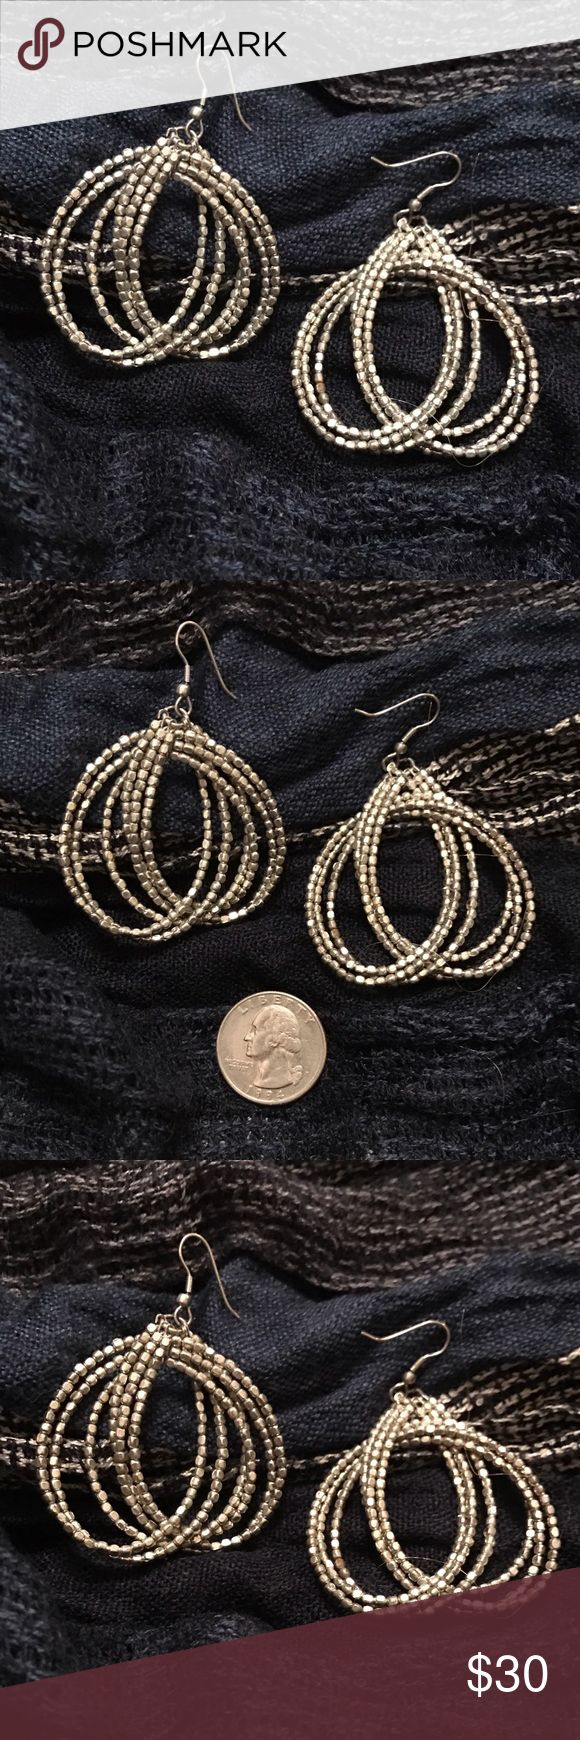 Anthropologie Earrings Brushed silver, tiny beaded wire dangle earrings. Great to throw on with your pretty summer dresses! A little over an inch in length. So pretty! No trades, thank you. Anthropologie Jewelry Earrings